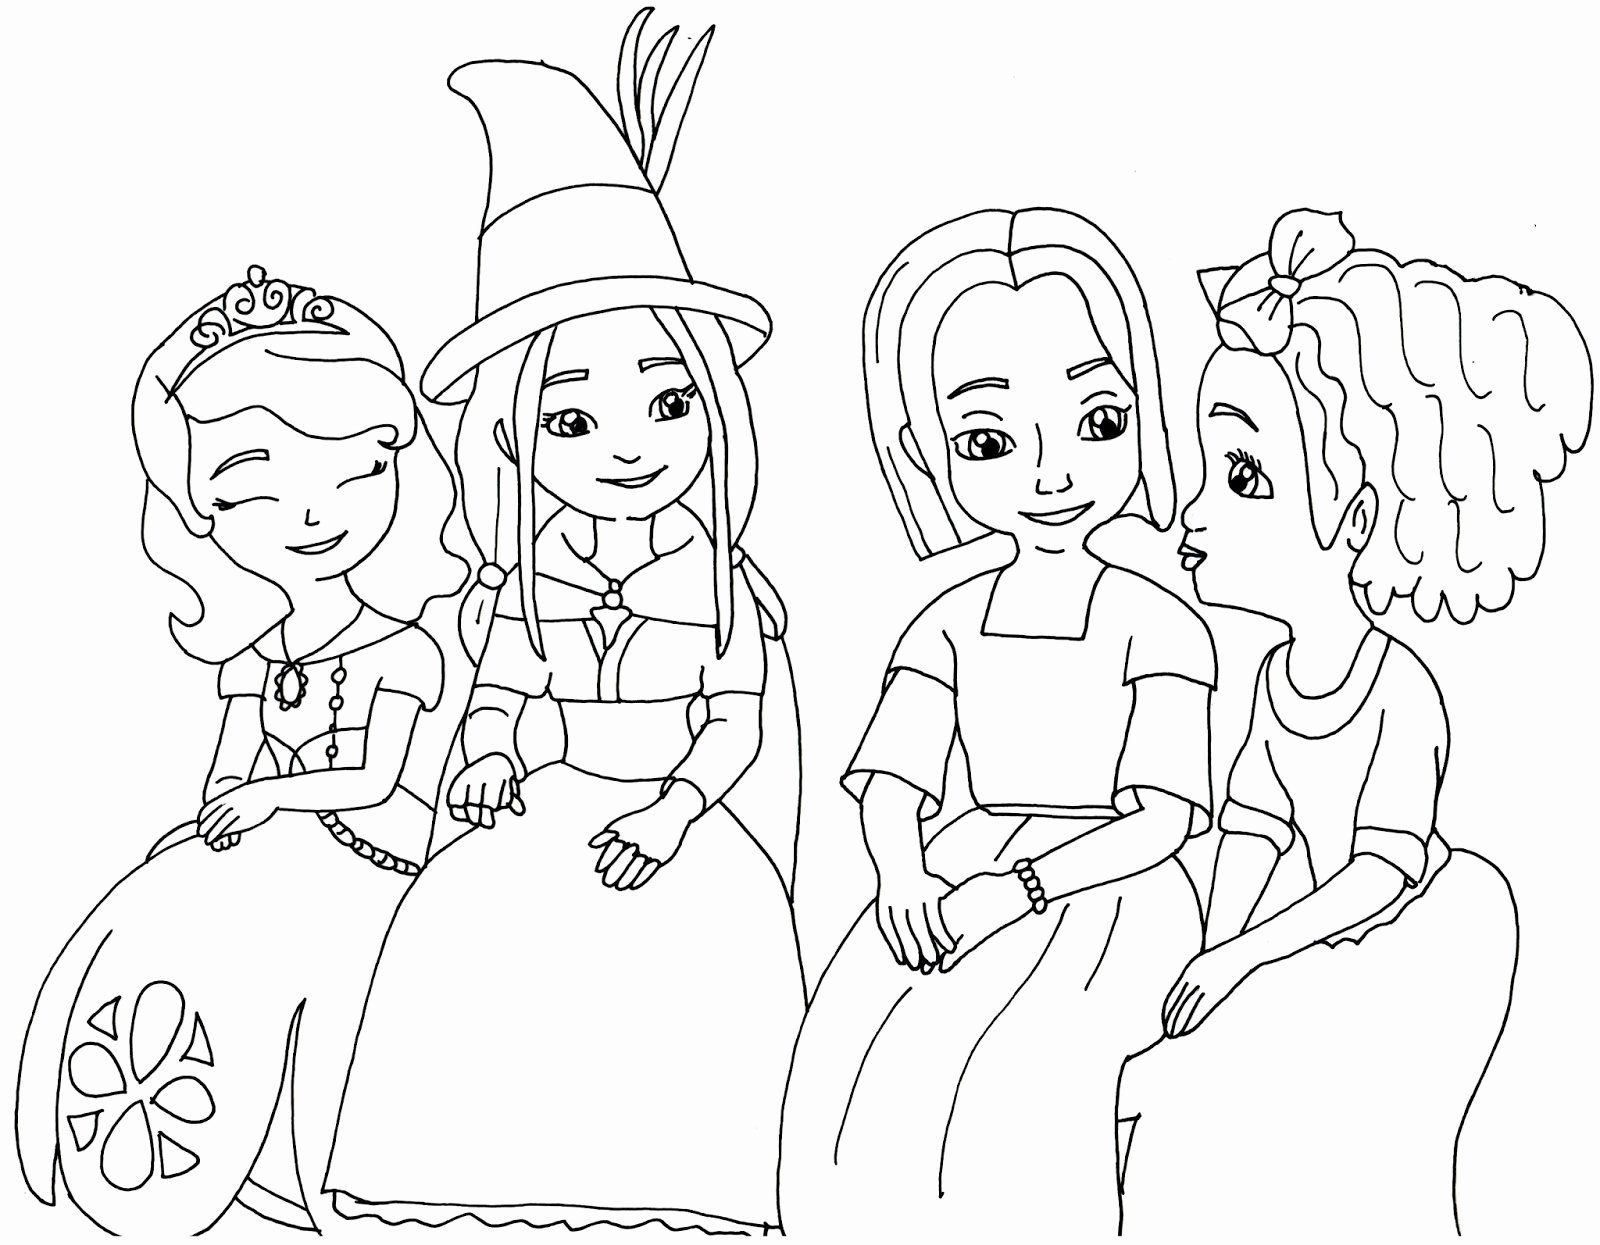 Sofia The First Coloring Book Luxury Sofia The First Coloring